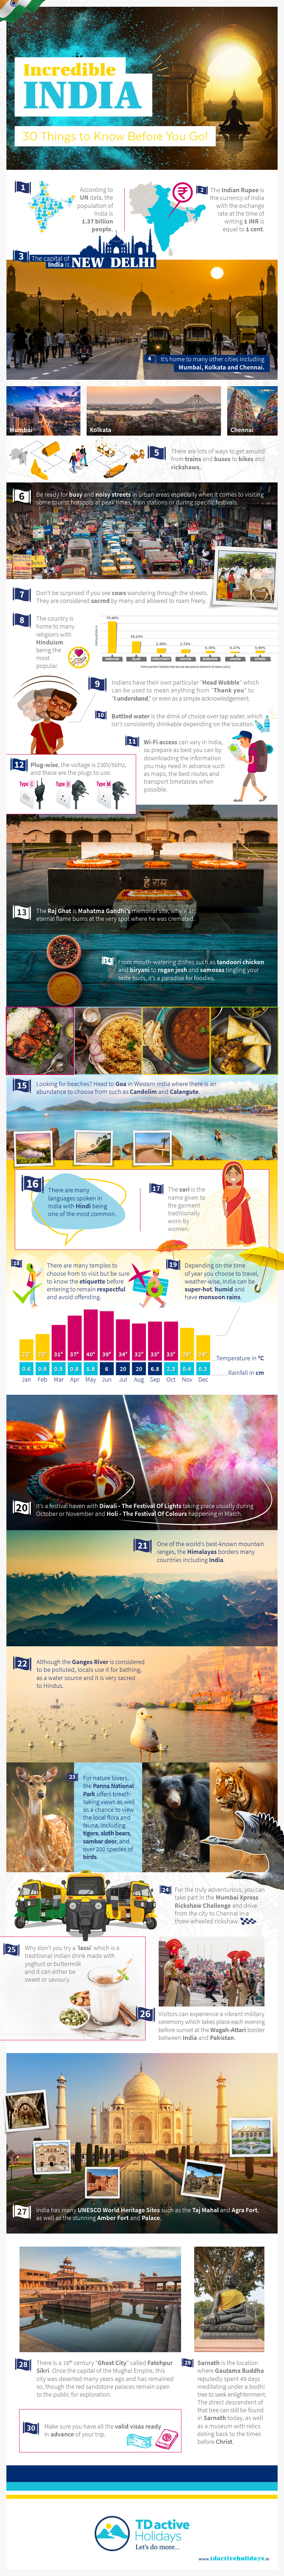 Incredible India - 30 Things to Know Before You Go - Infographic